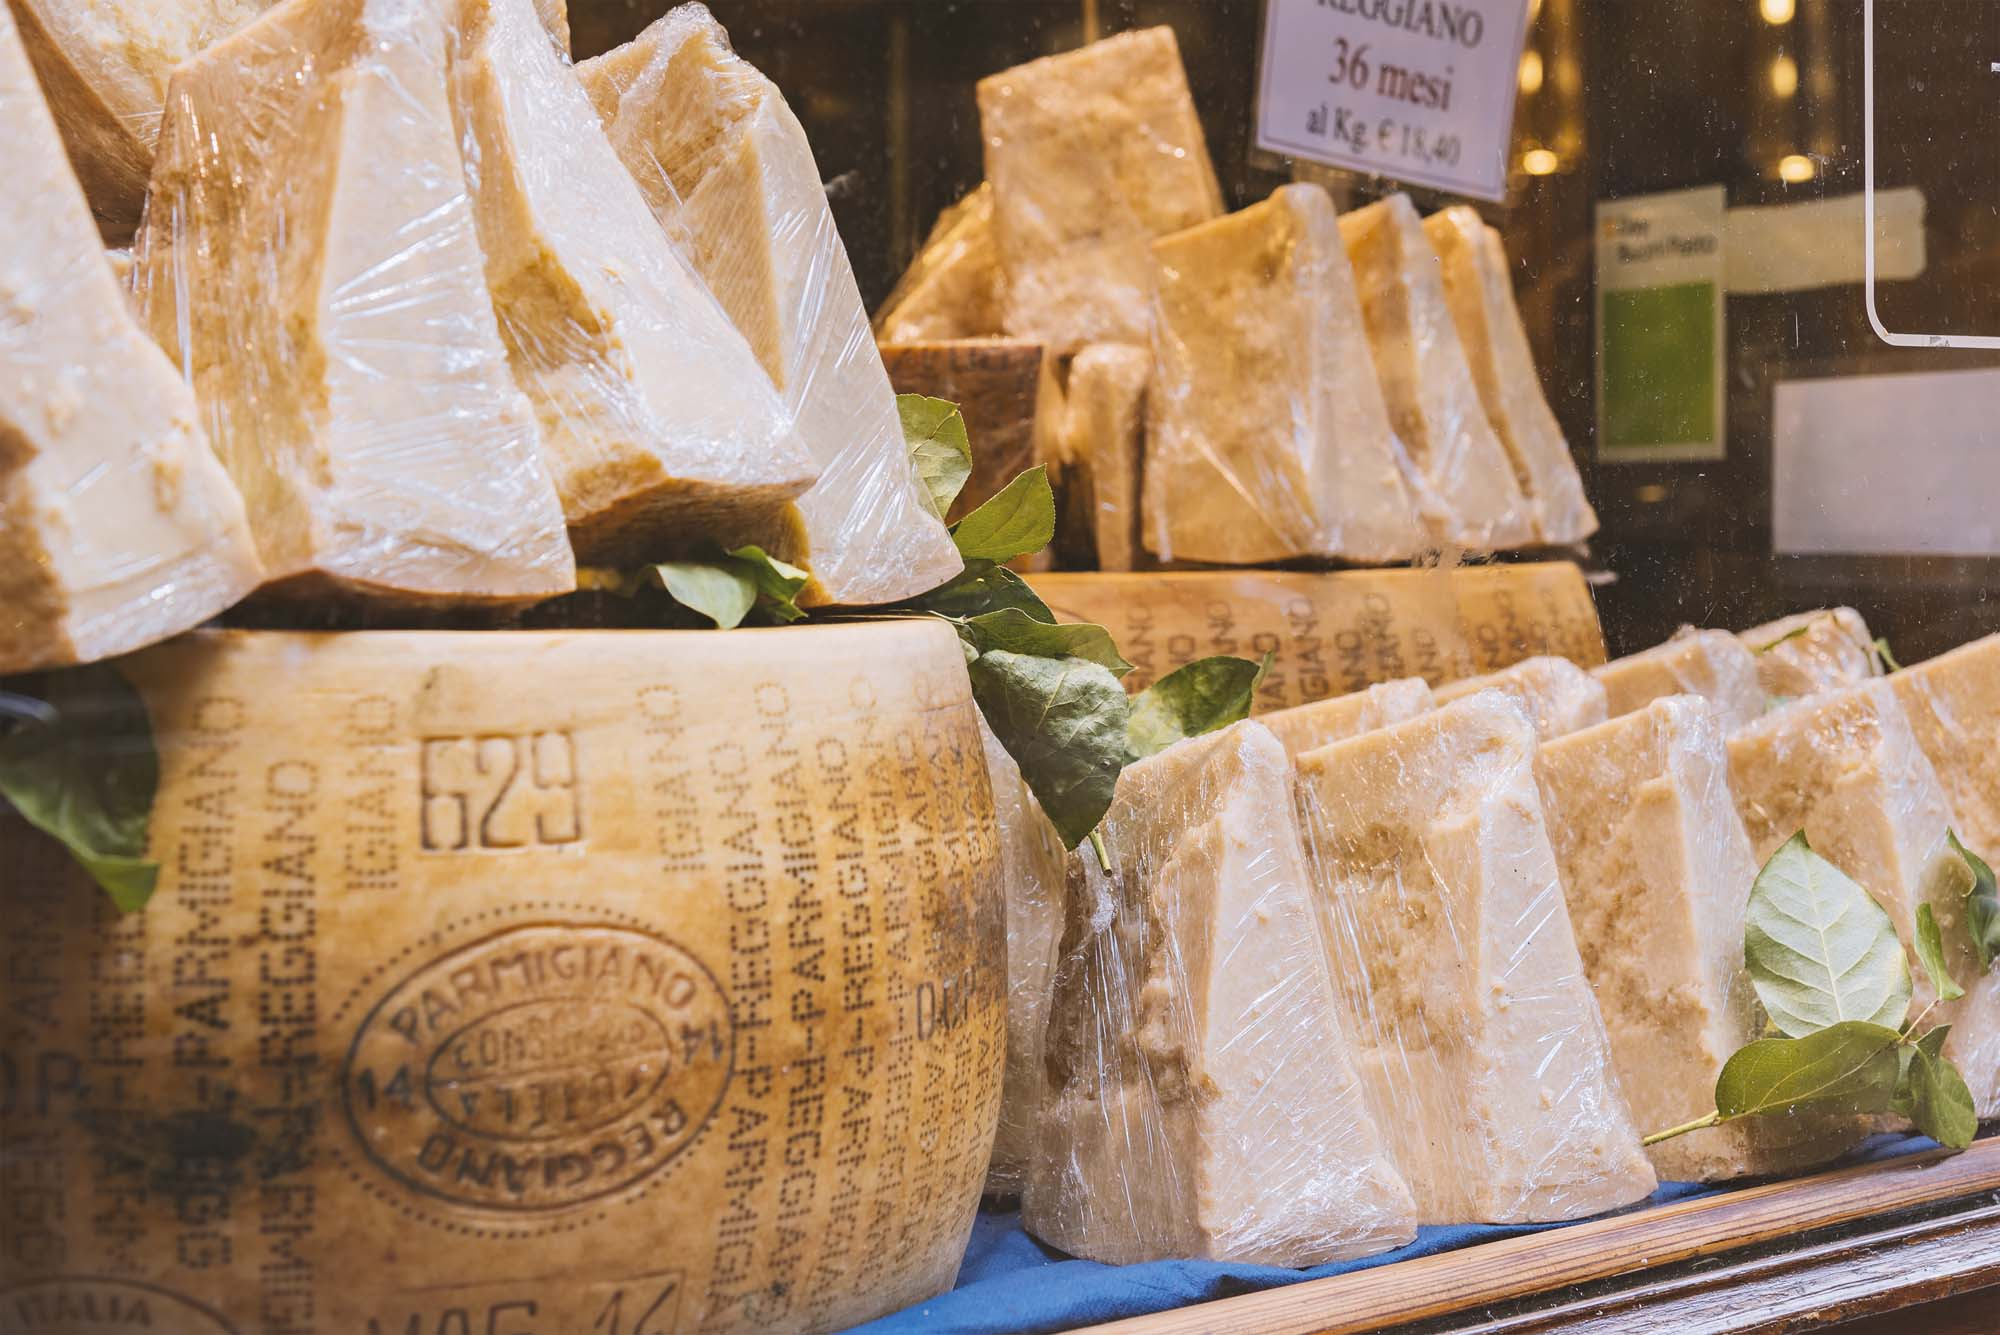 Cheese shop displaying Parmigiano-Reggiano cheeses.